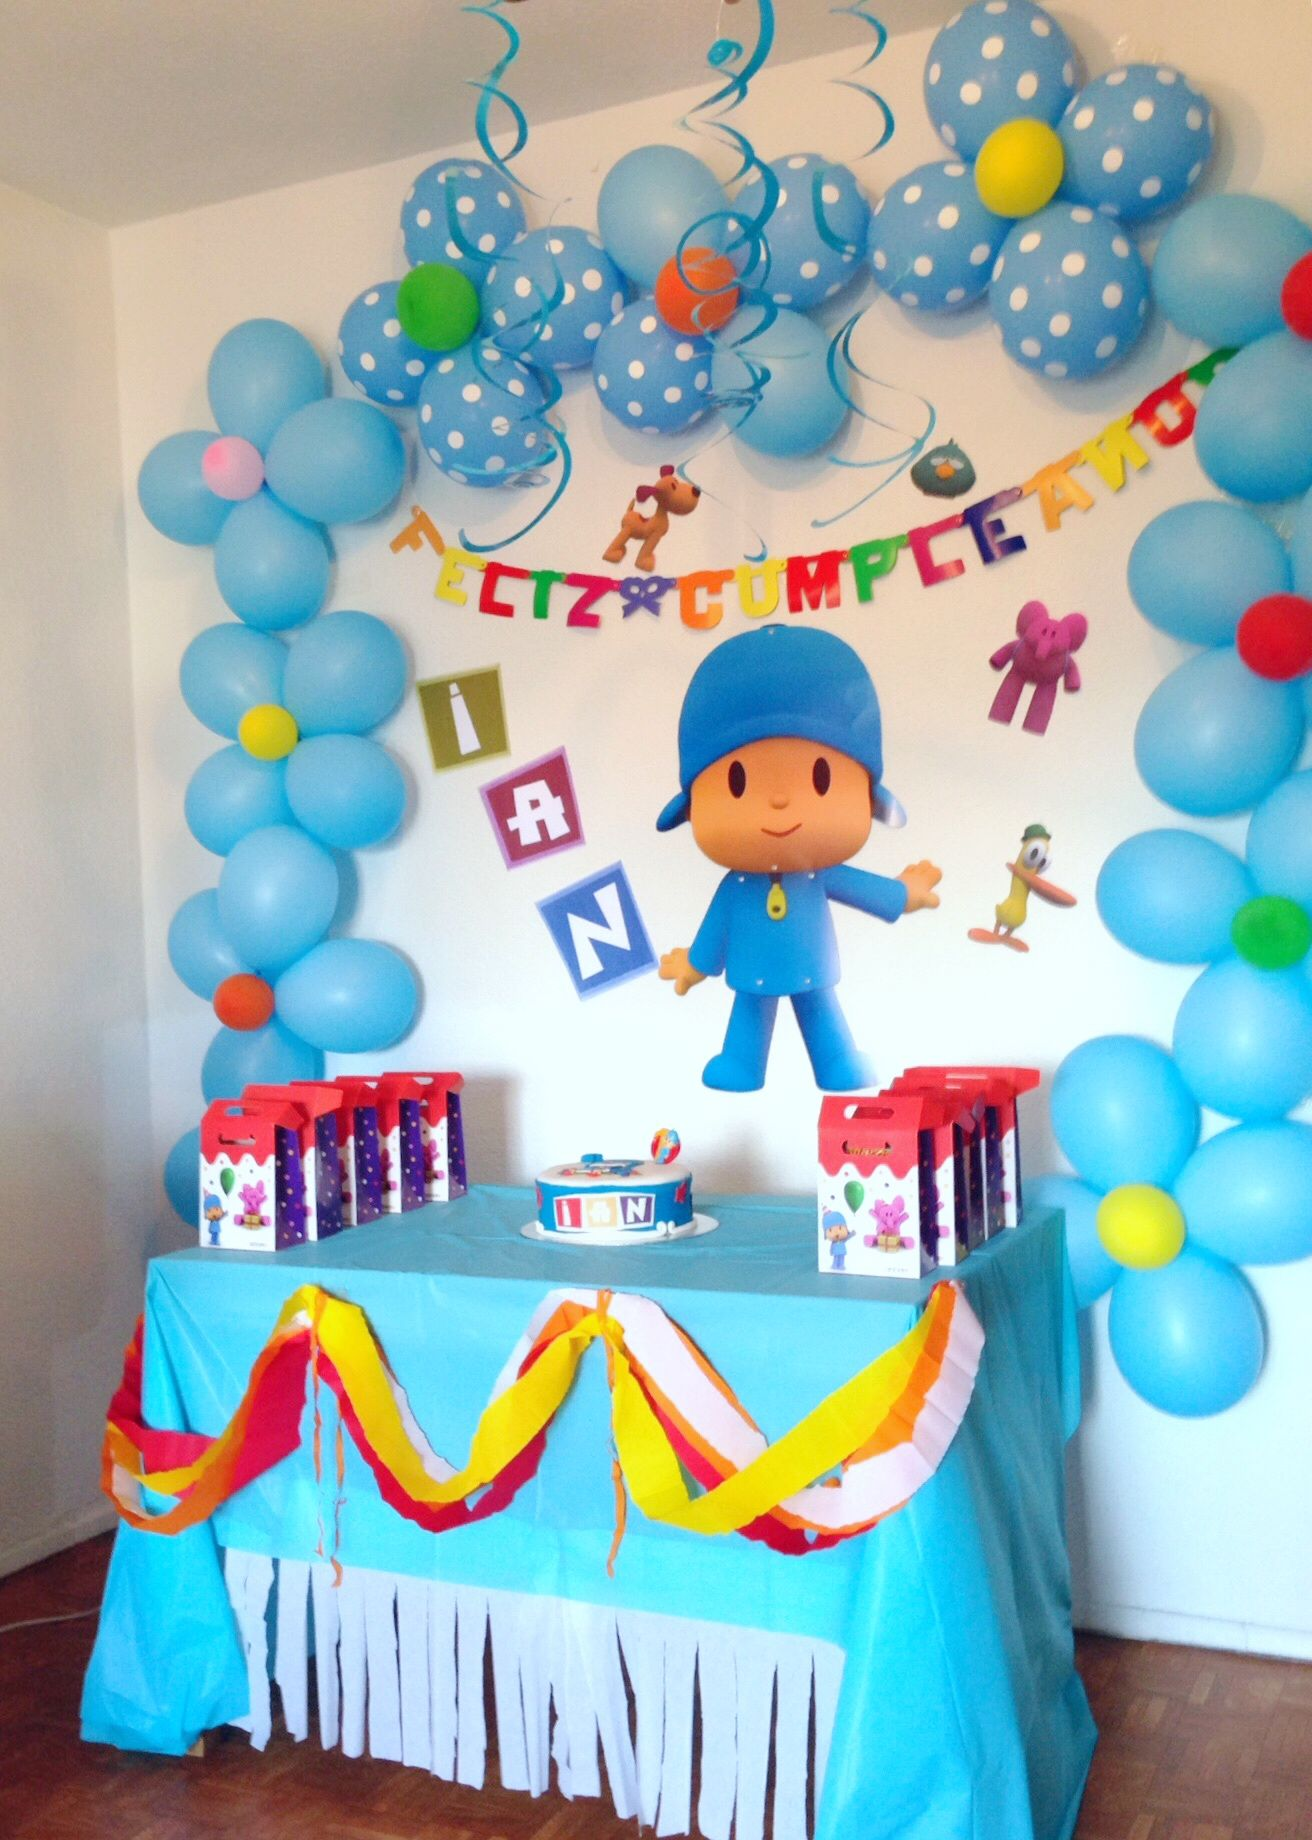 pocoyo decoracin cumpleaos infantil ideas birthday party